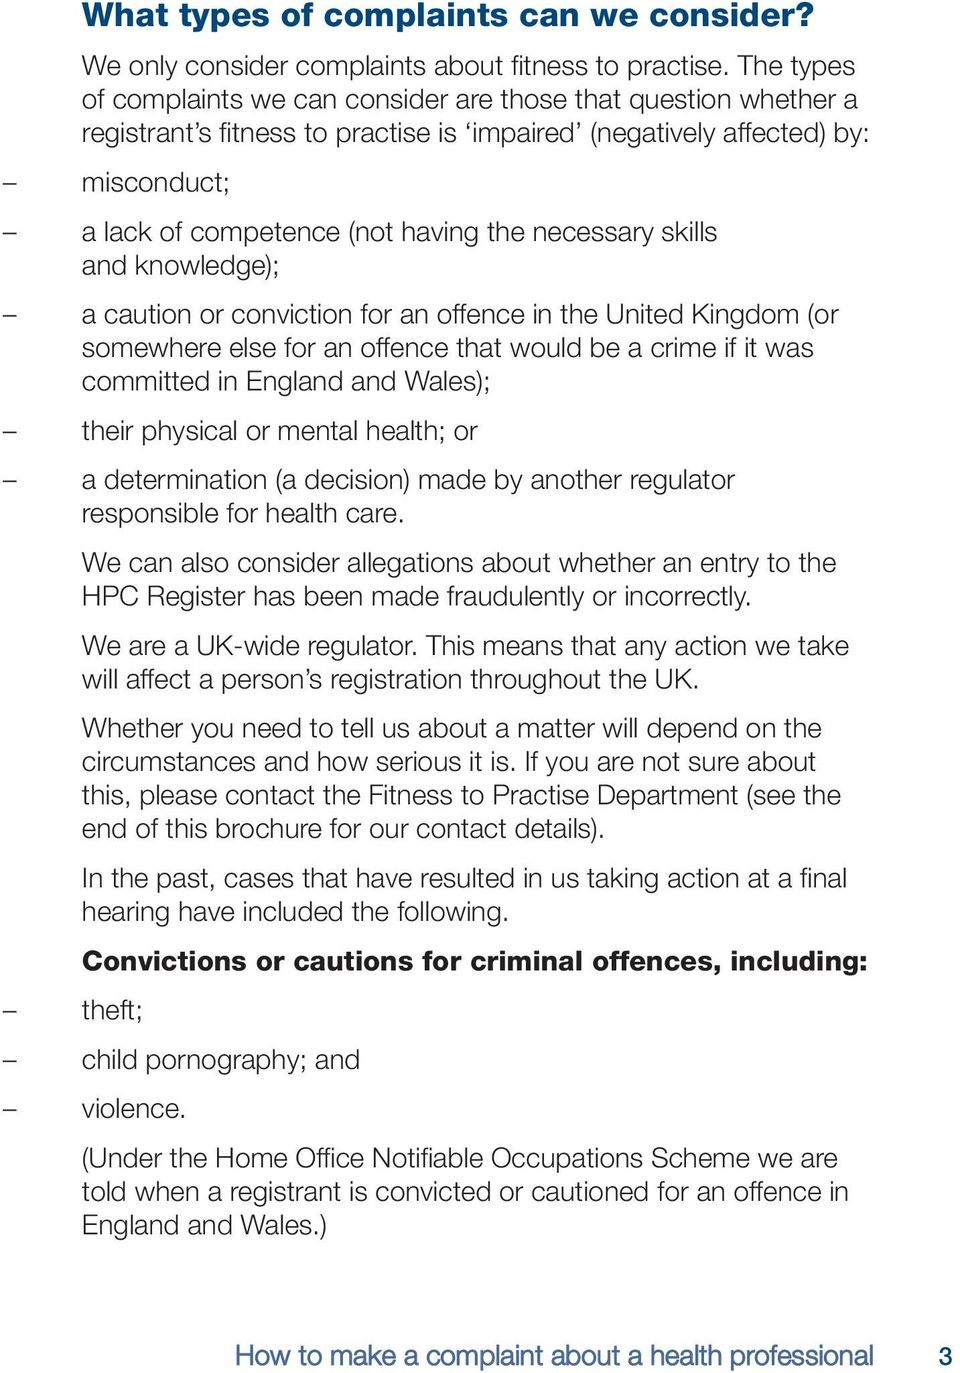 necessary skills and knowledge); a caution or conviction for an offence in the United Kingdom (or somewhere else for an offence that would be a crime if it was committed in England and Wales); their